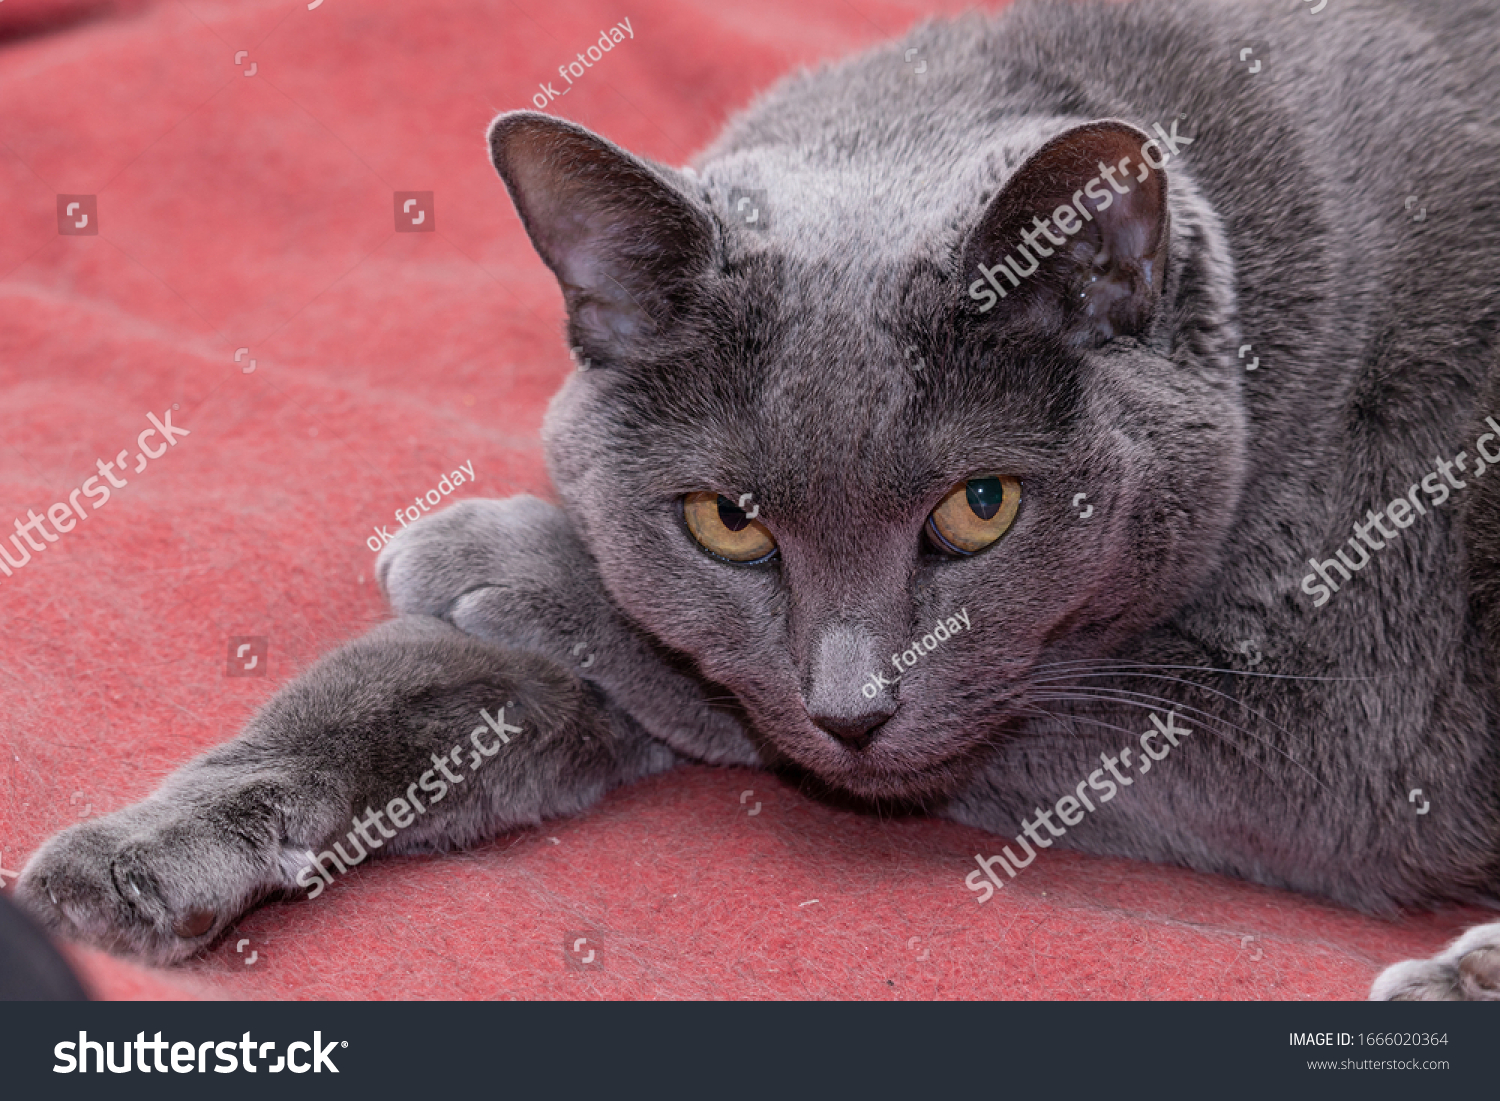 Elderly gray cat resting his head on his paw and looking at the camera